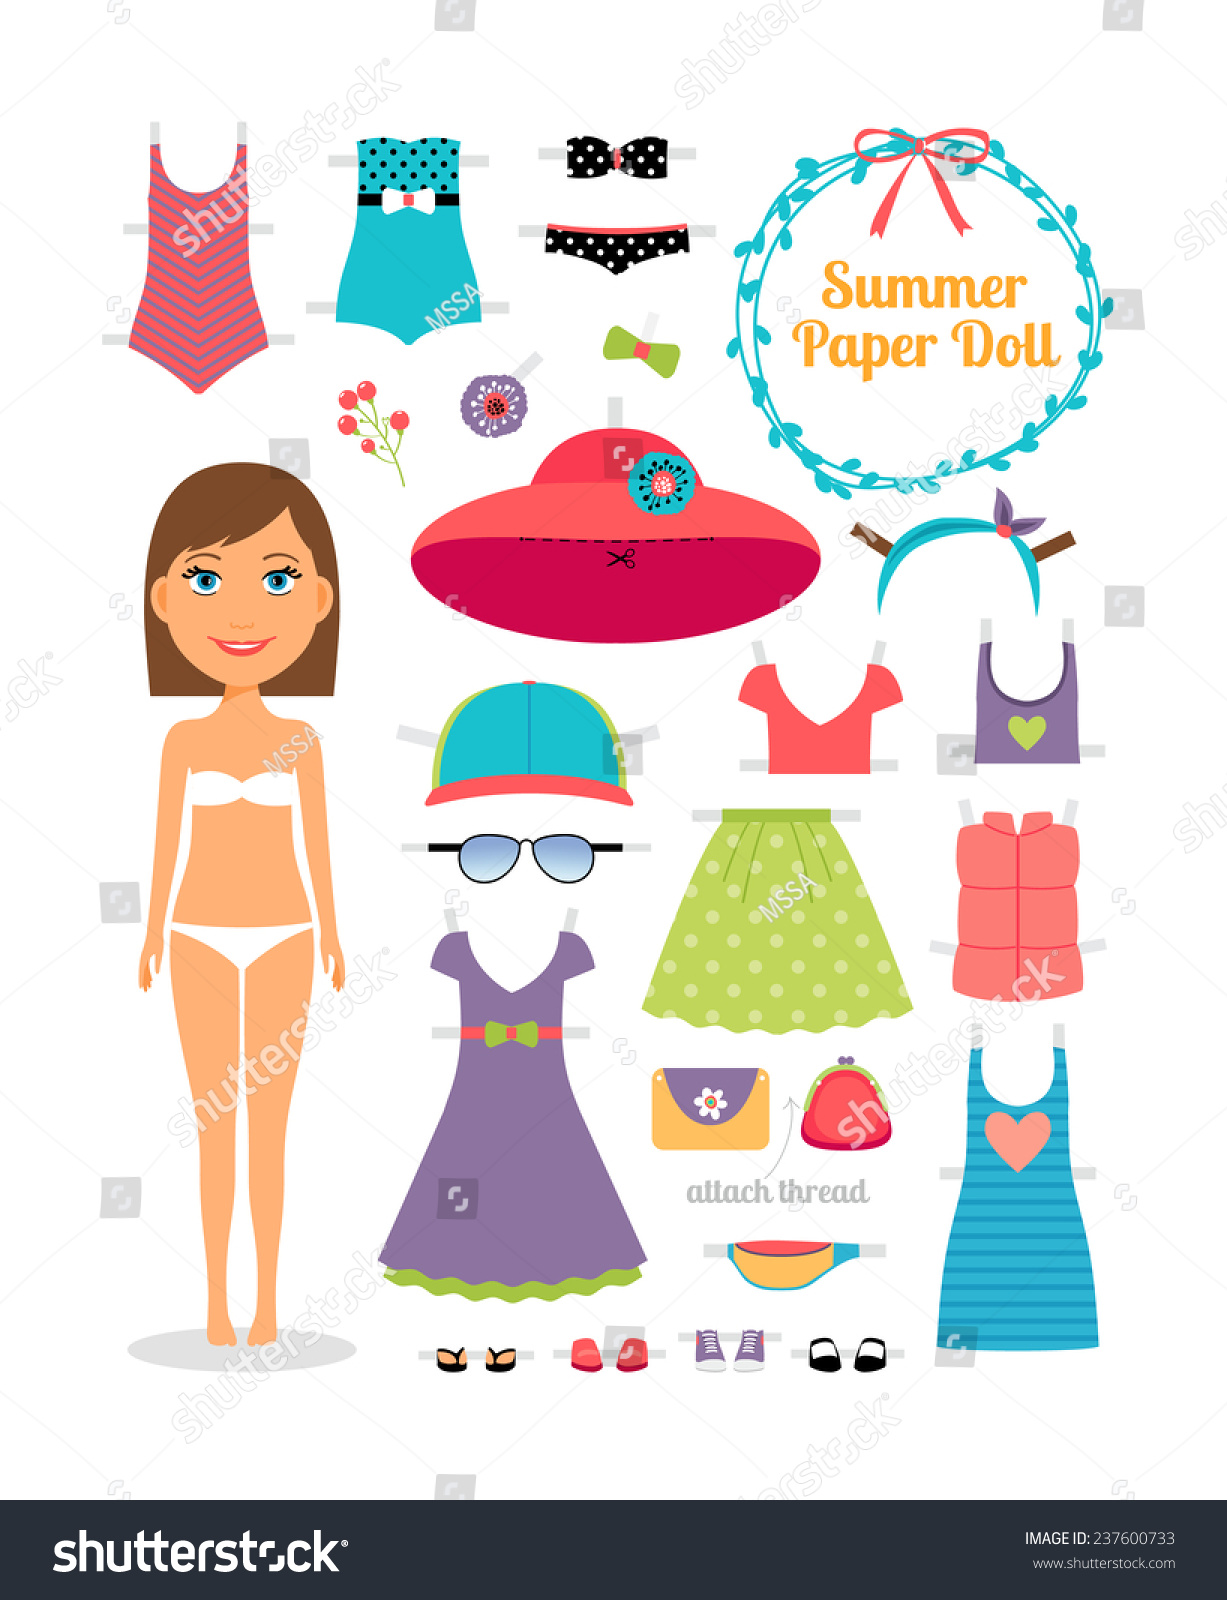 summer paper doll girl dress hat stock vector royalty free